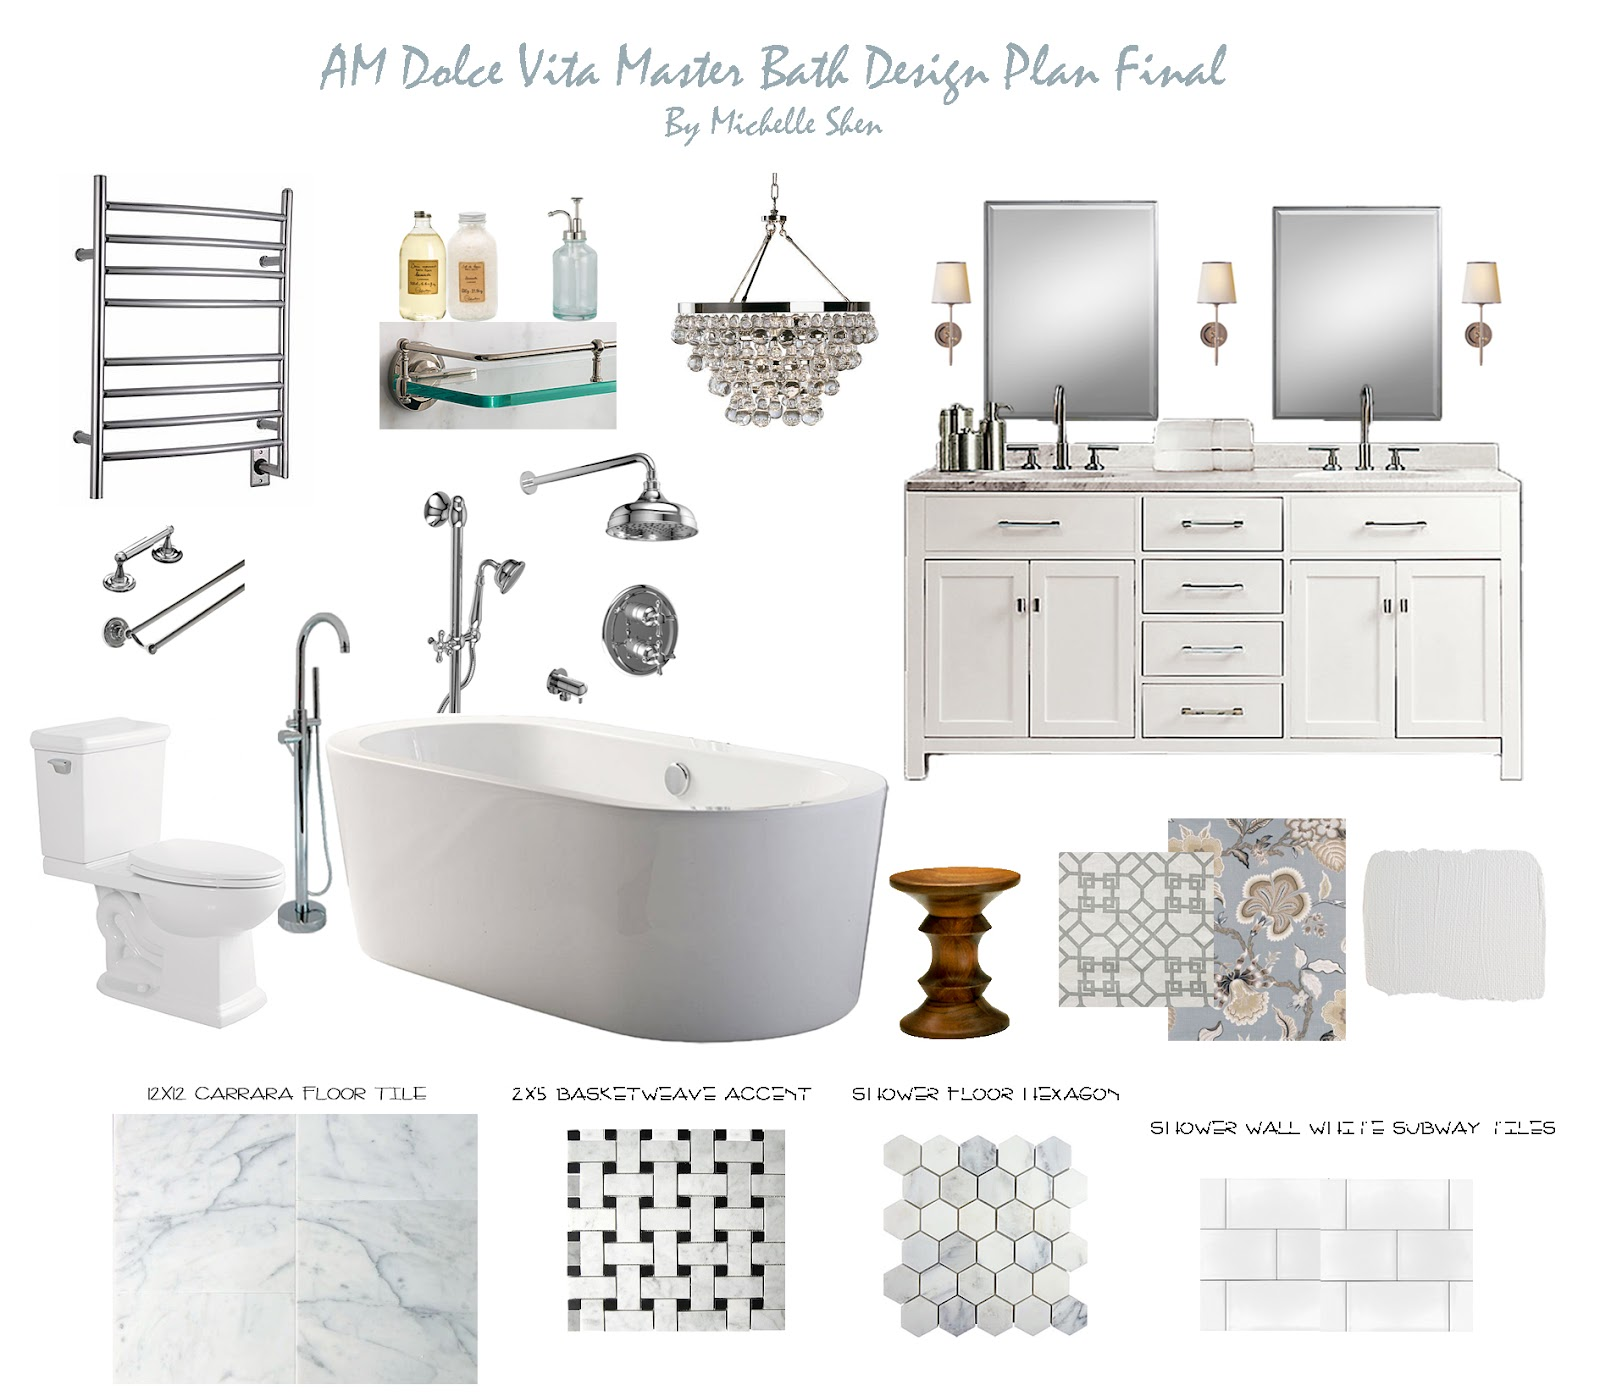 Am dolce vita which bathroom stool would you choose for Tub materials